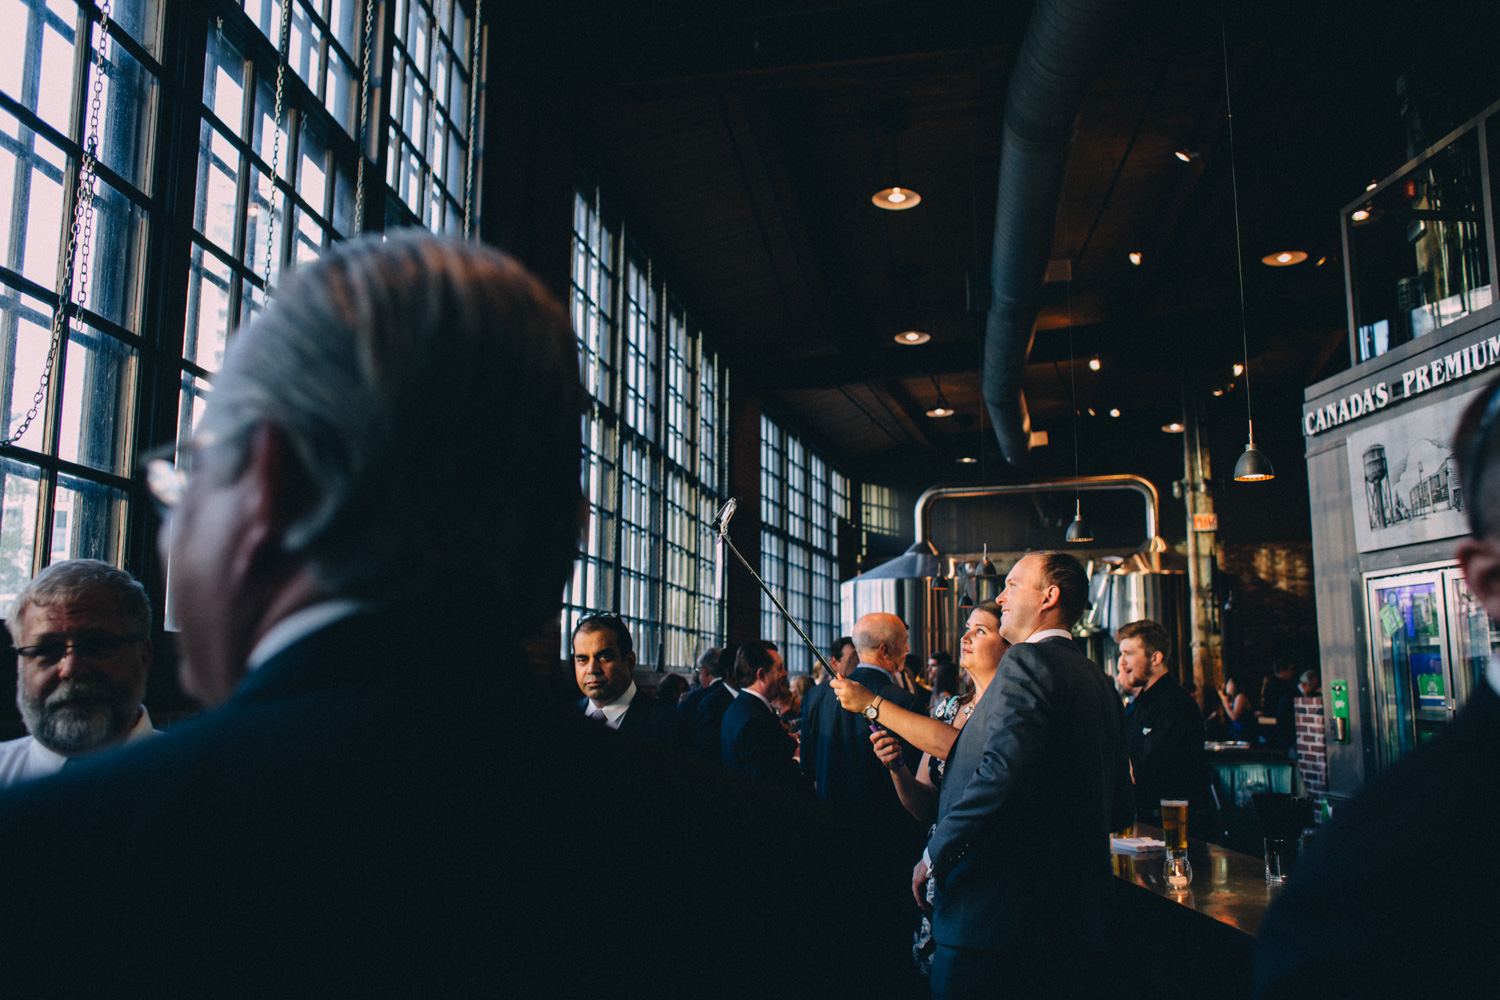 Steam-Whistle-Brewery-wedding-photos-Toronto-wedding-photography-by-Sam-Wong-of-Artanis-Collective_42.jpg